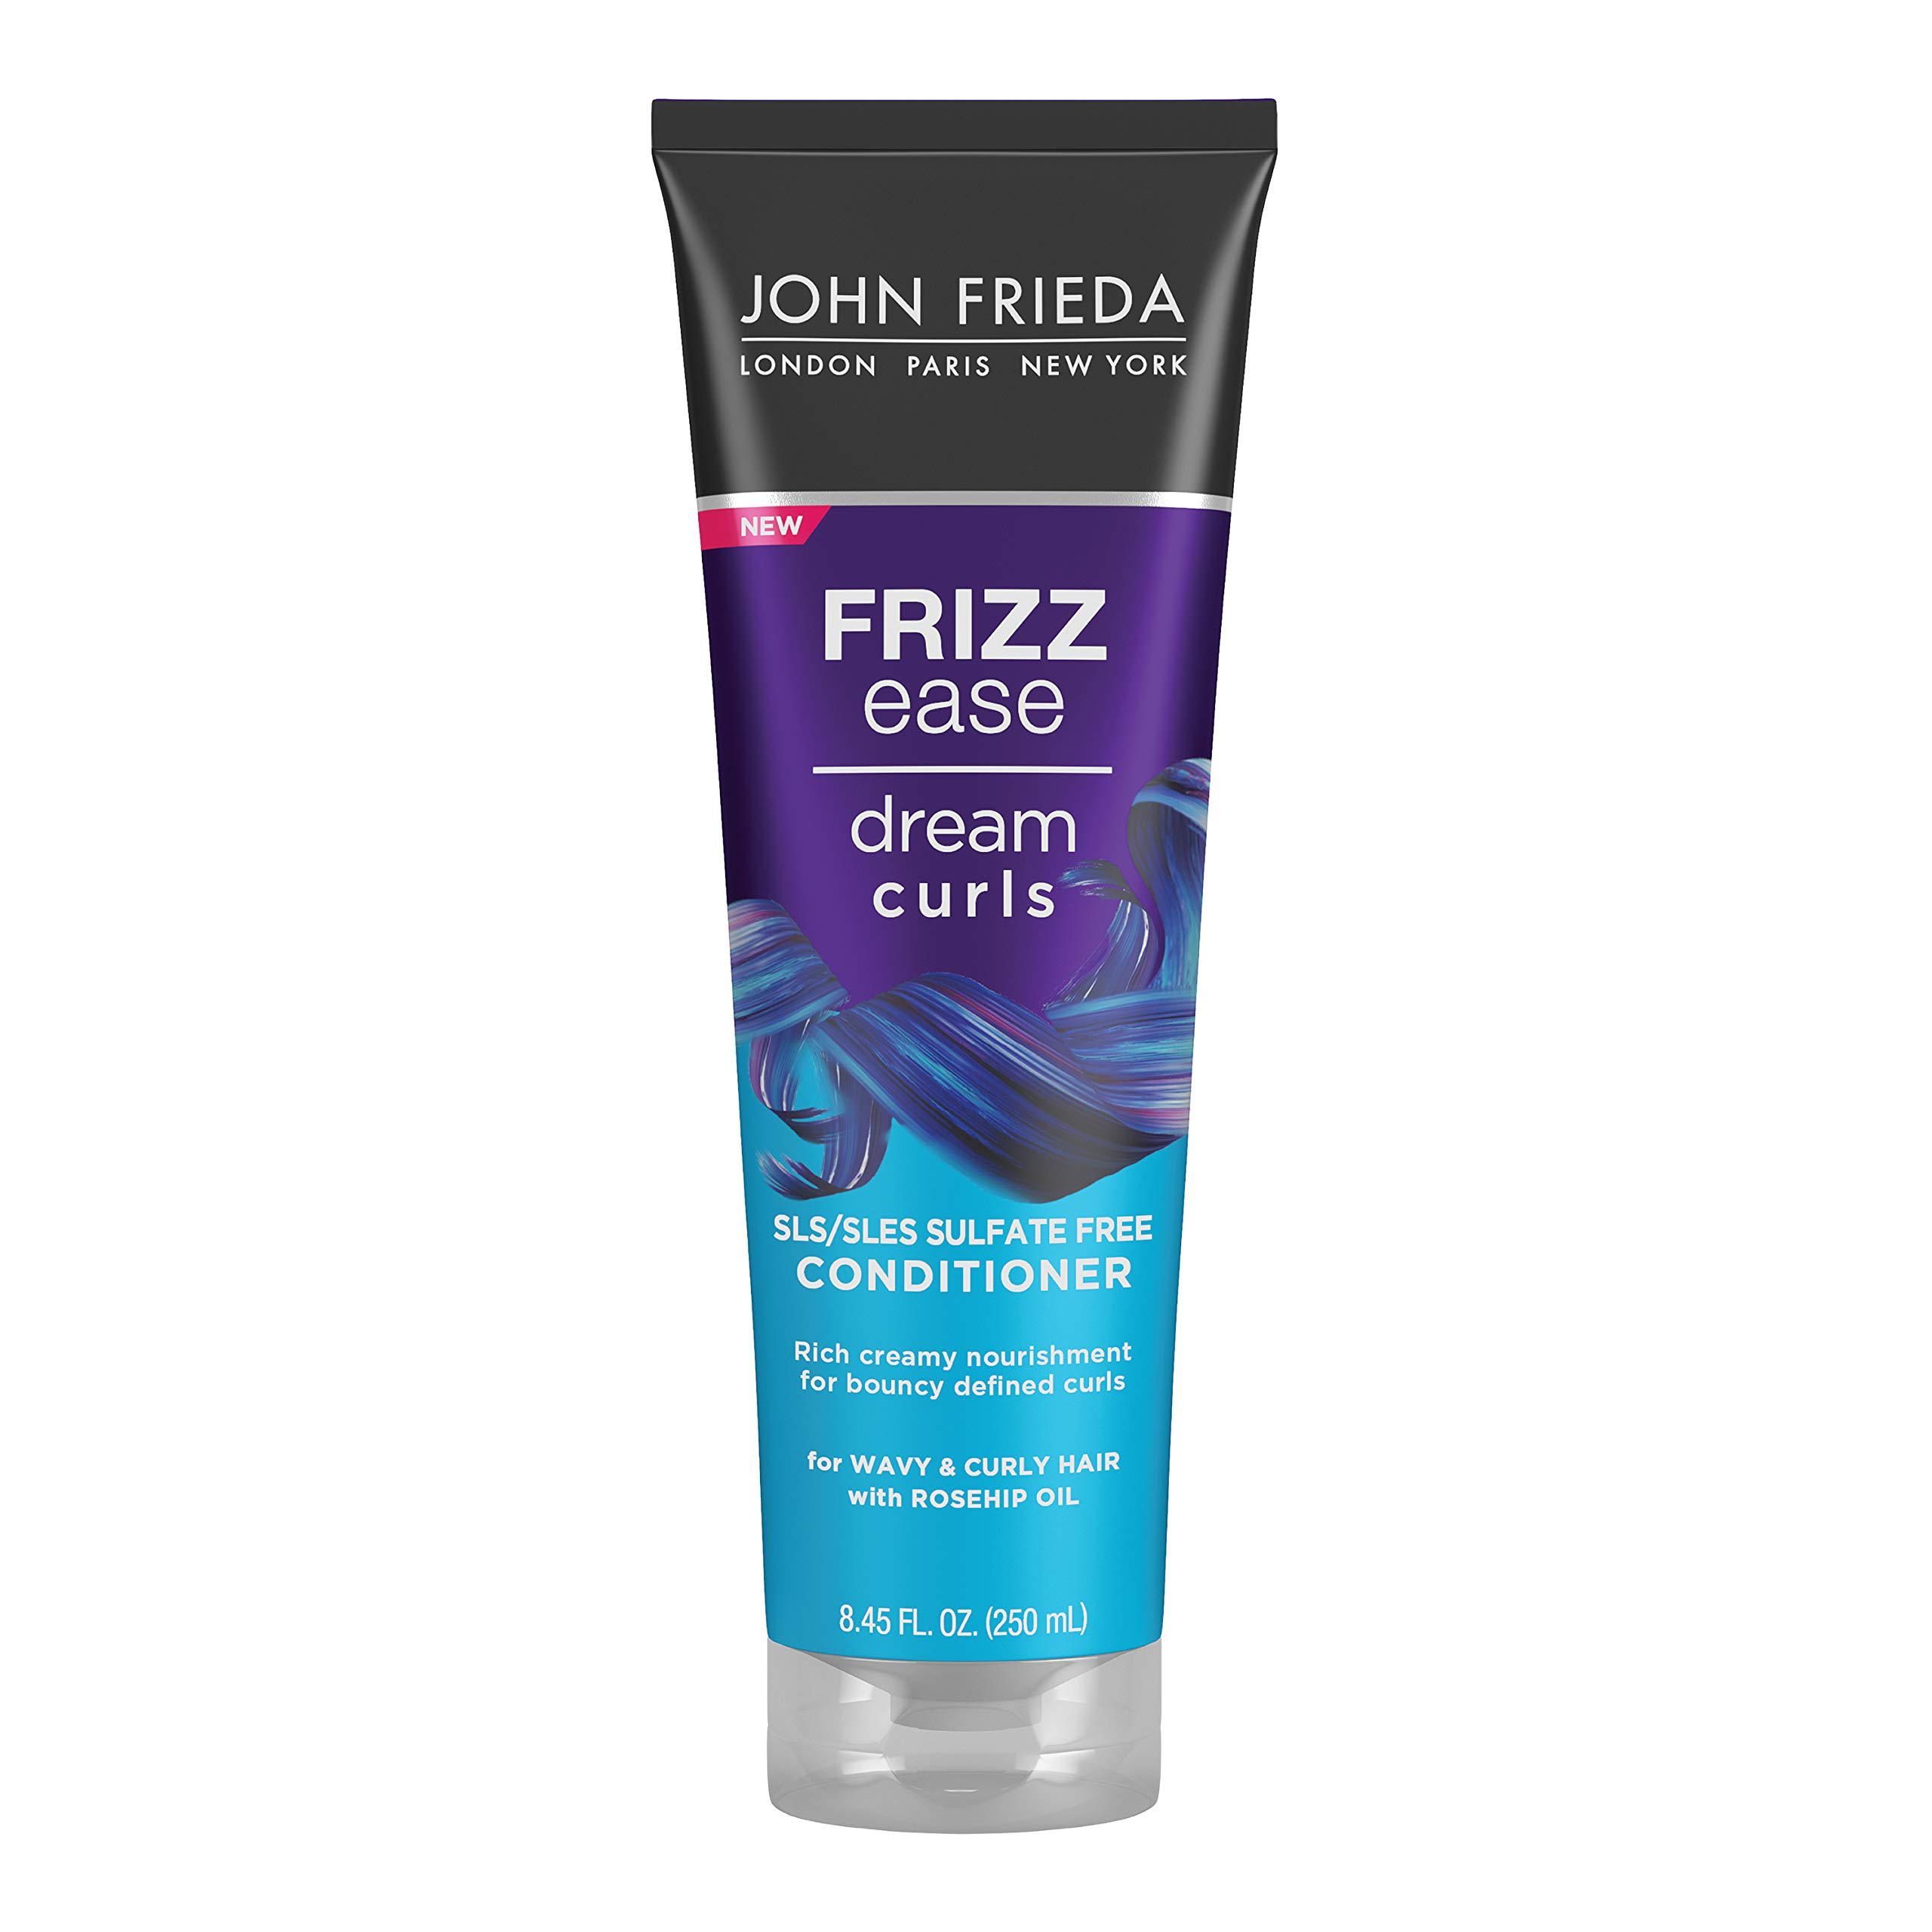 John Frieda Frizz Ease Dream Curls Conditioner, Hydrates and Defines Curly, Wavy Hair, Helps Control Frizz, SLS/SLES Sulfate Free, Enhances Natural Curls, 8.45 Fluid Ounces